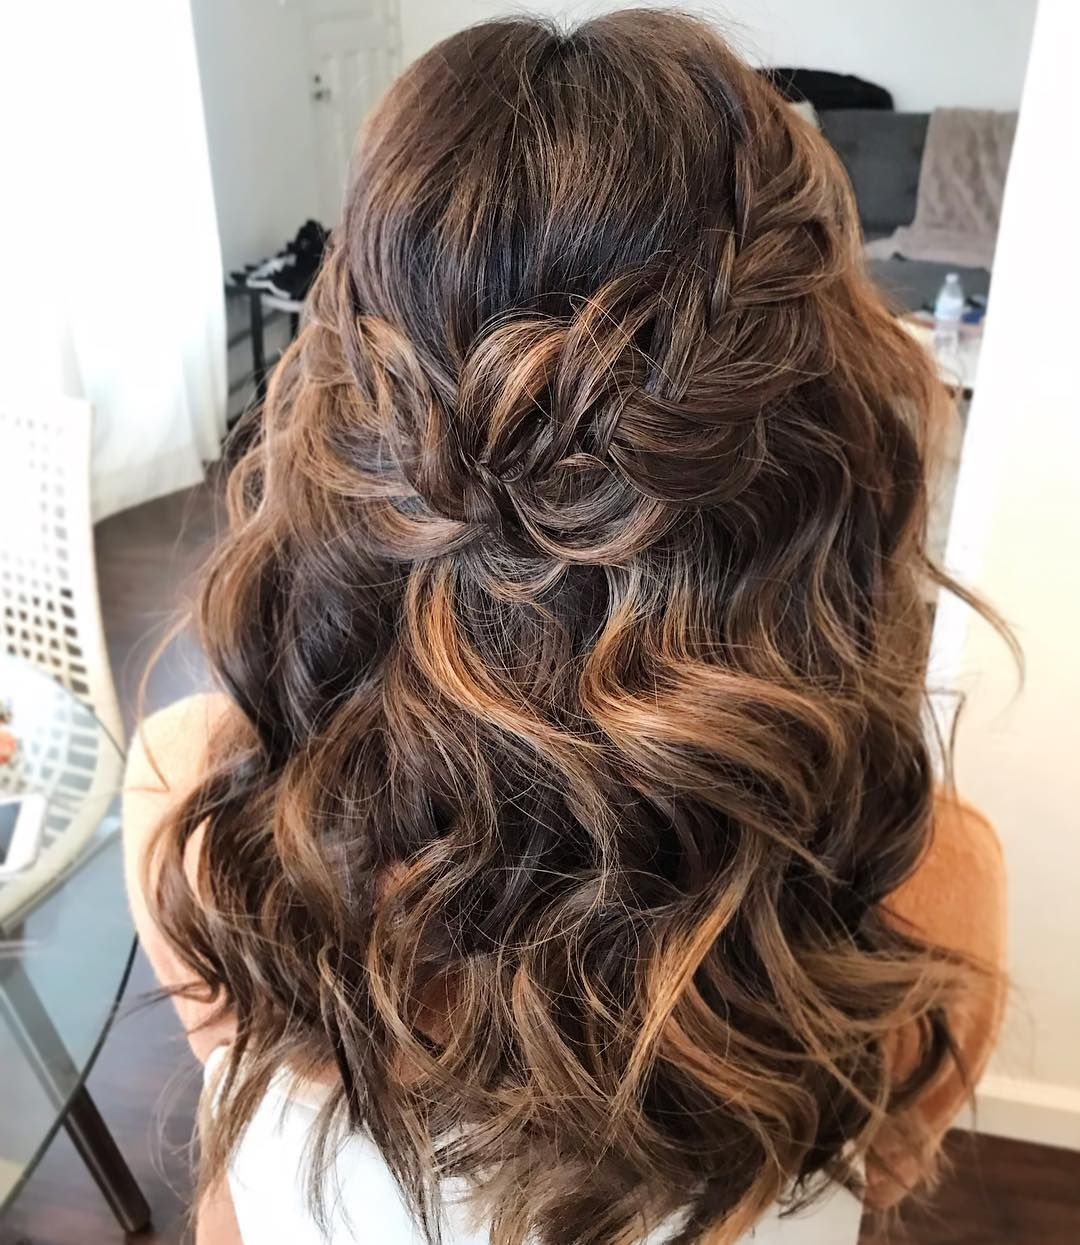 Beautiful Braided Half Up Half Down Hairstyle